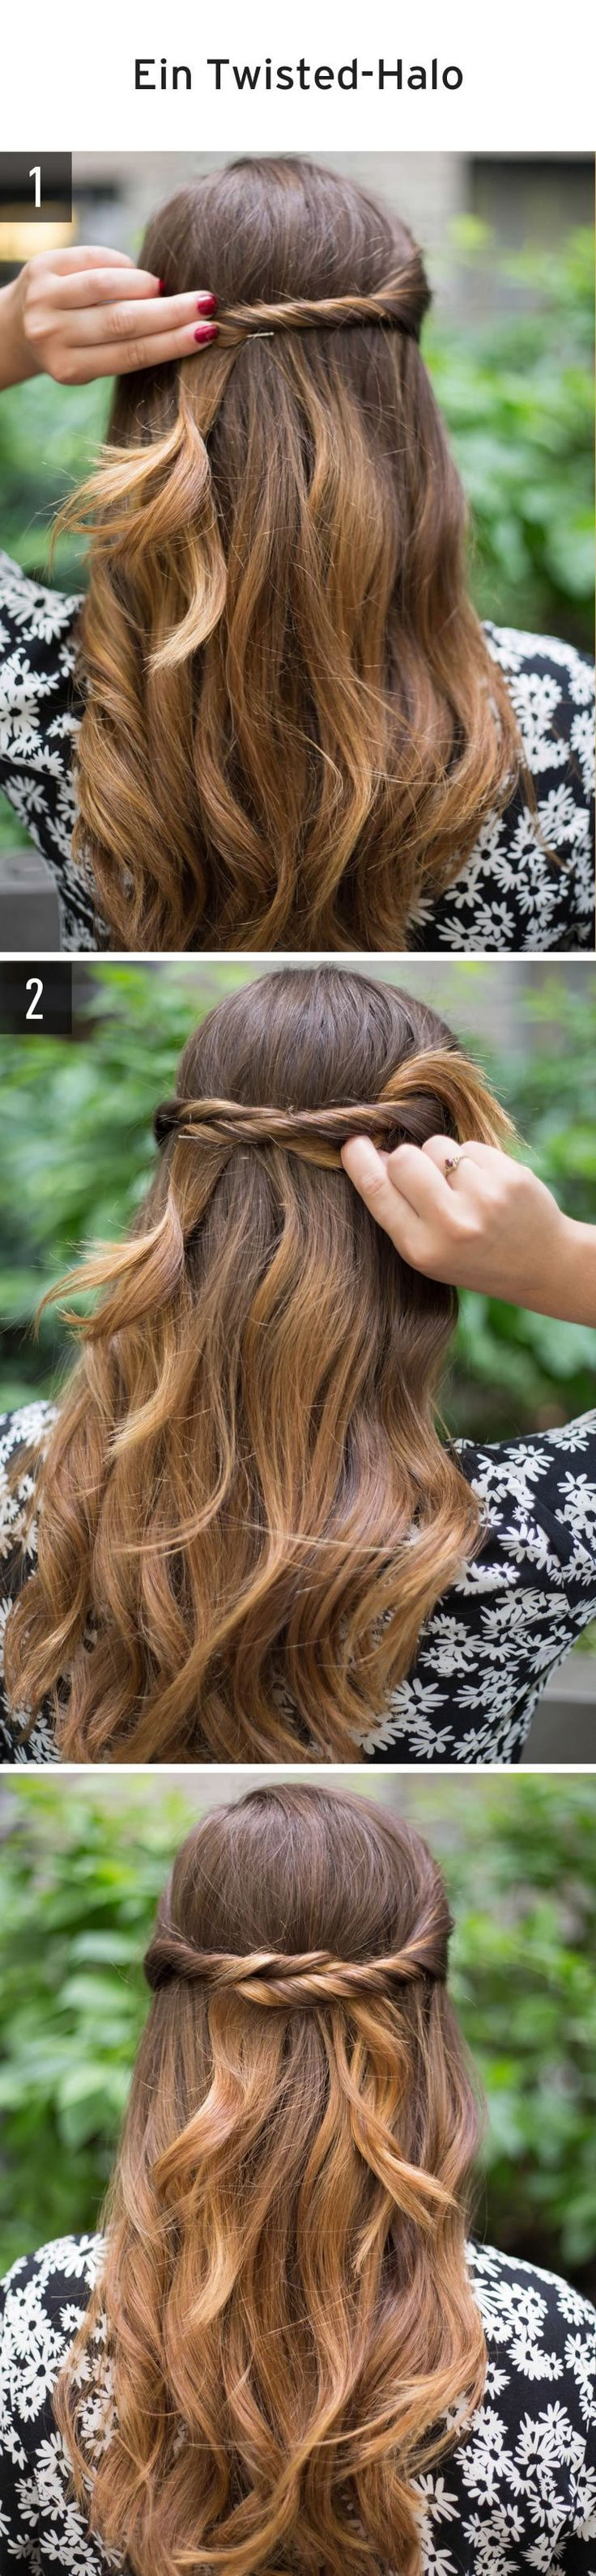 Braided Hairstyles for Spring 2017: Simple, messy and straight hair